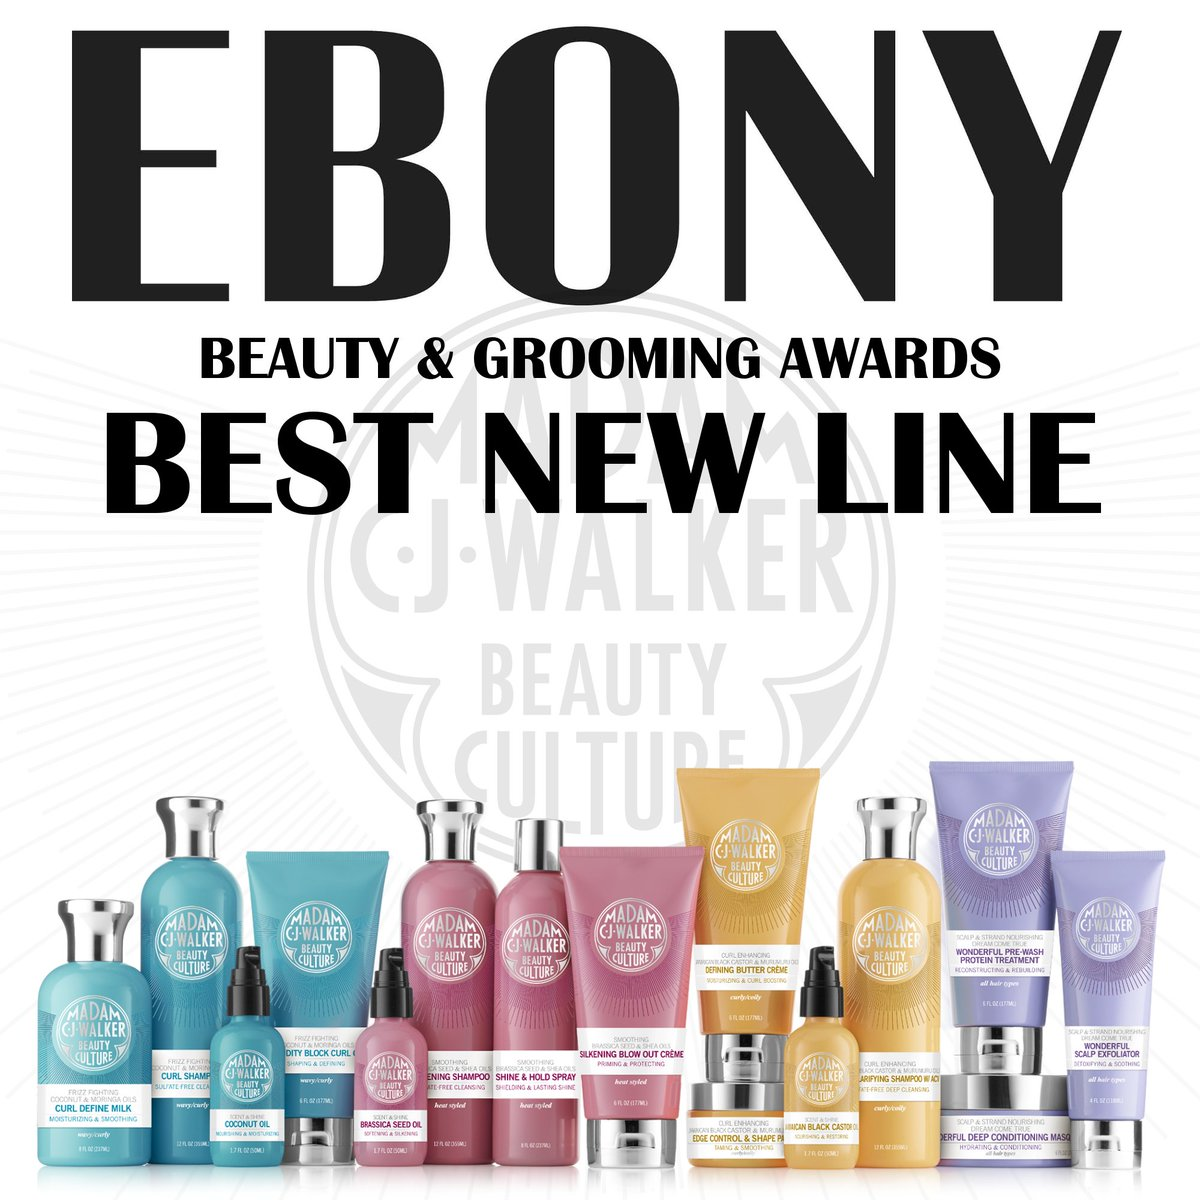 Madam C J Walker On Twitter We Re Honored To Be Named Best New Line In Ebonymag S 2016 Beauty Grooming Awards Thank You For Helping To Make This Possible Hair Https T Co Nwgeukf70n